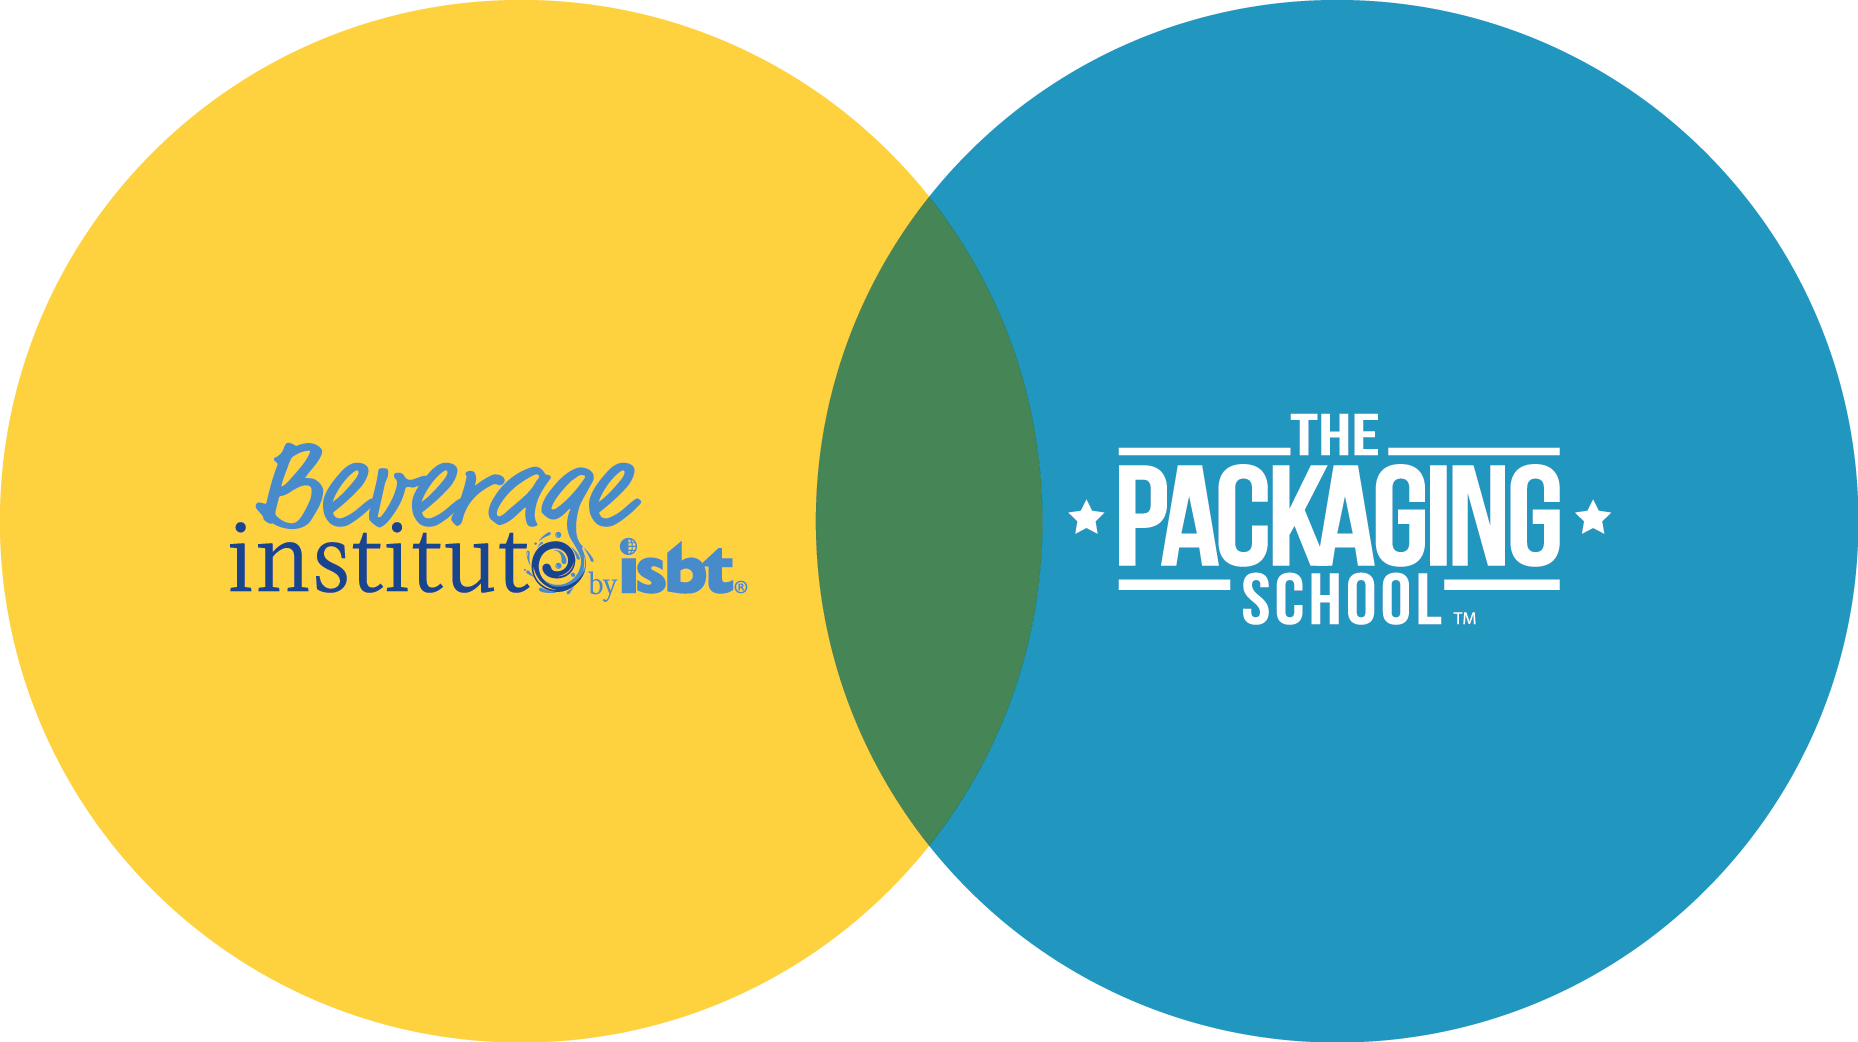 Beverage Institute + The Packaging School